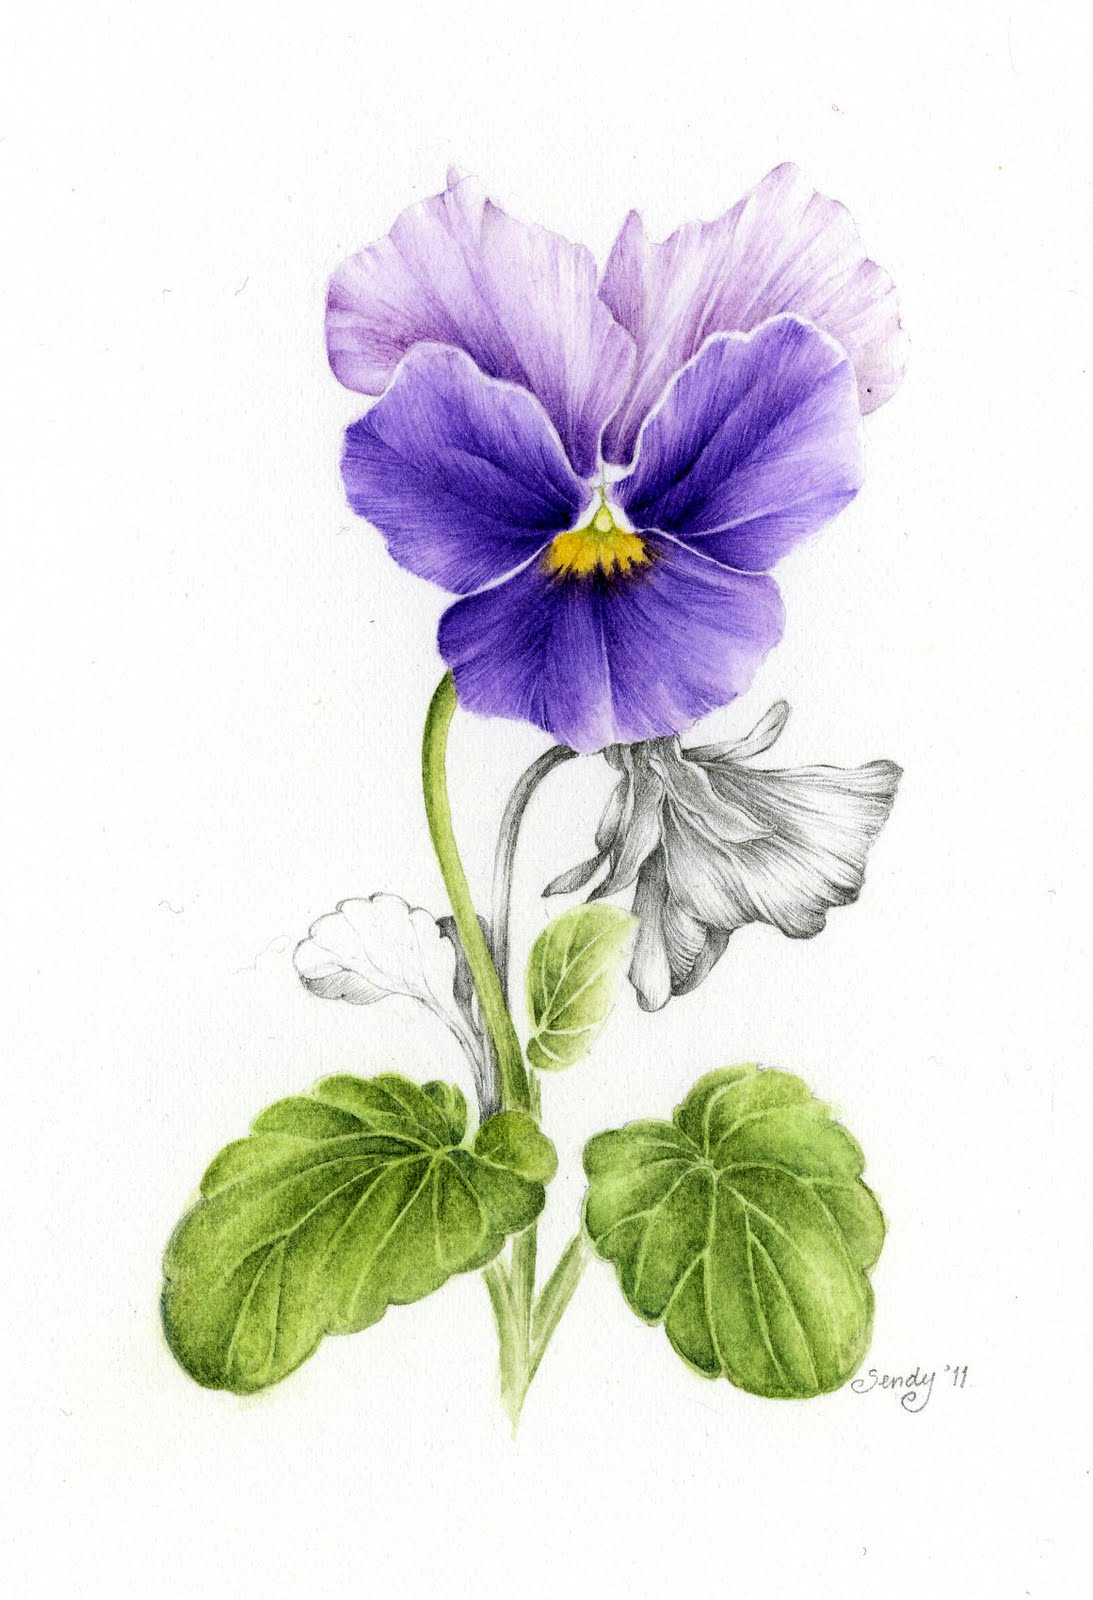 pansy flower drawing - photo #19